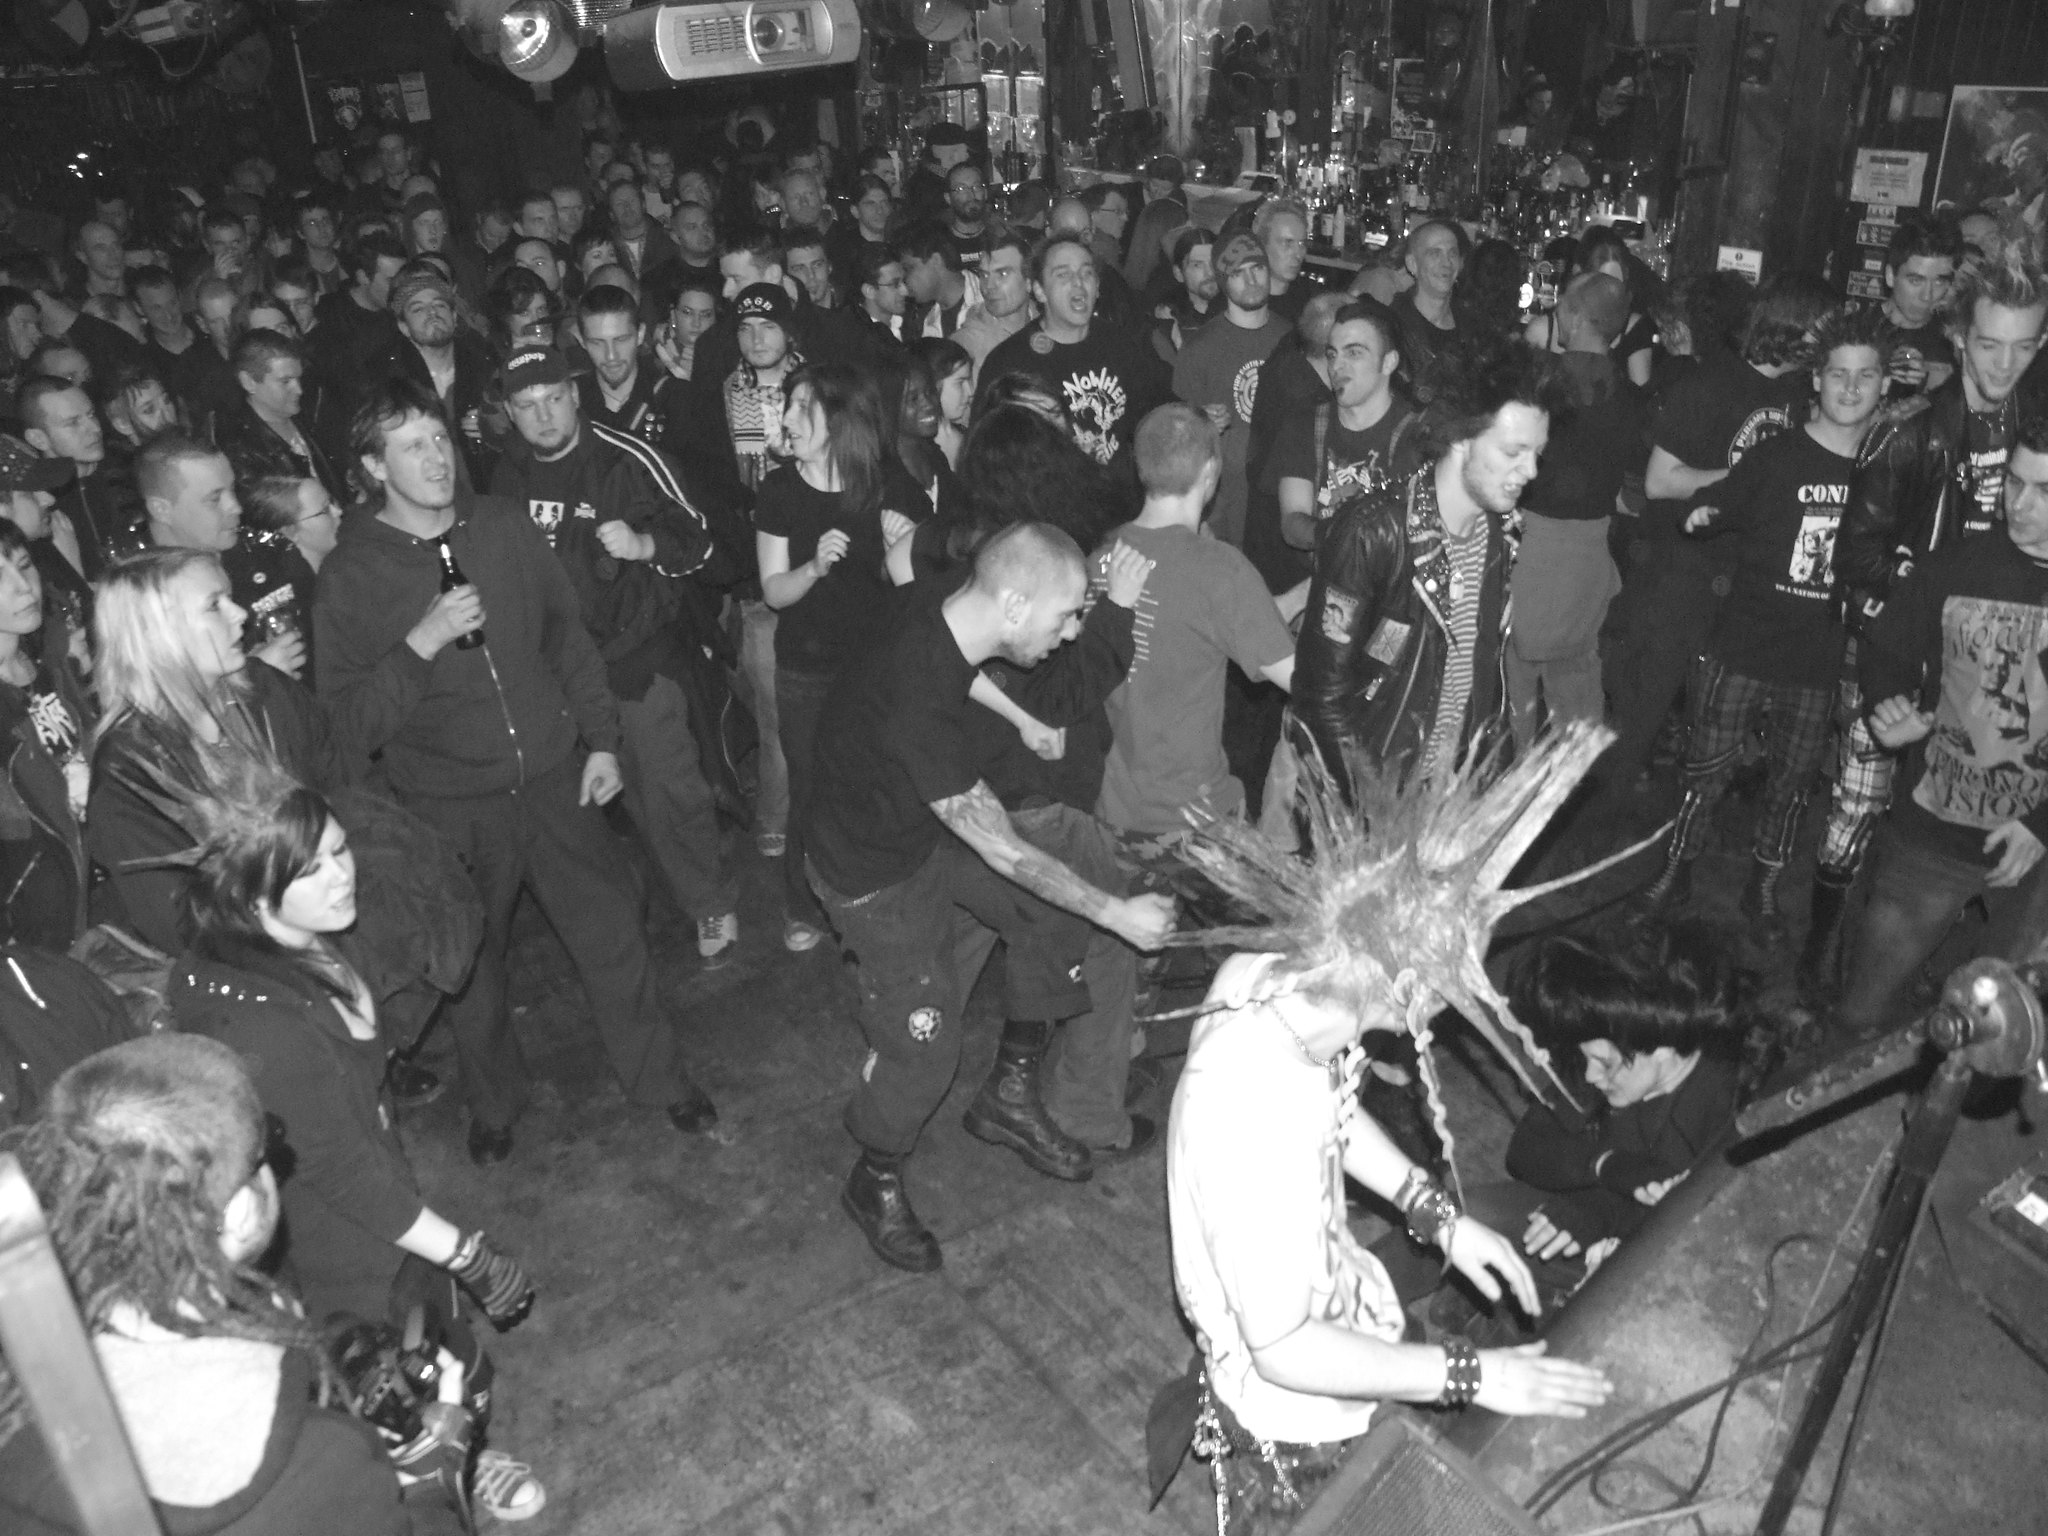 Let's open up this (brief history of the) mosh pit!